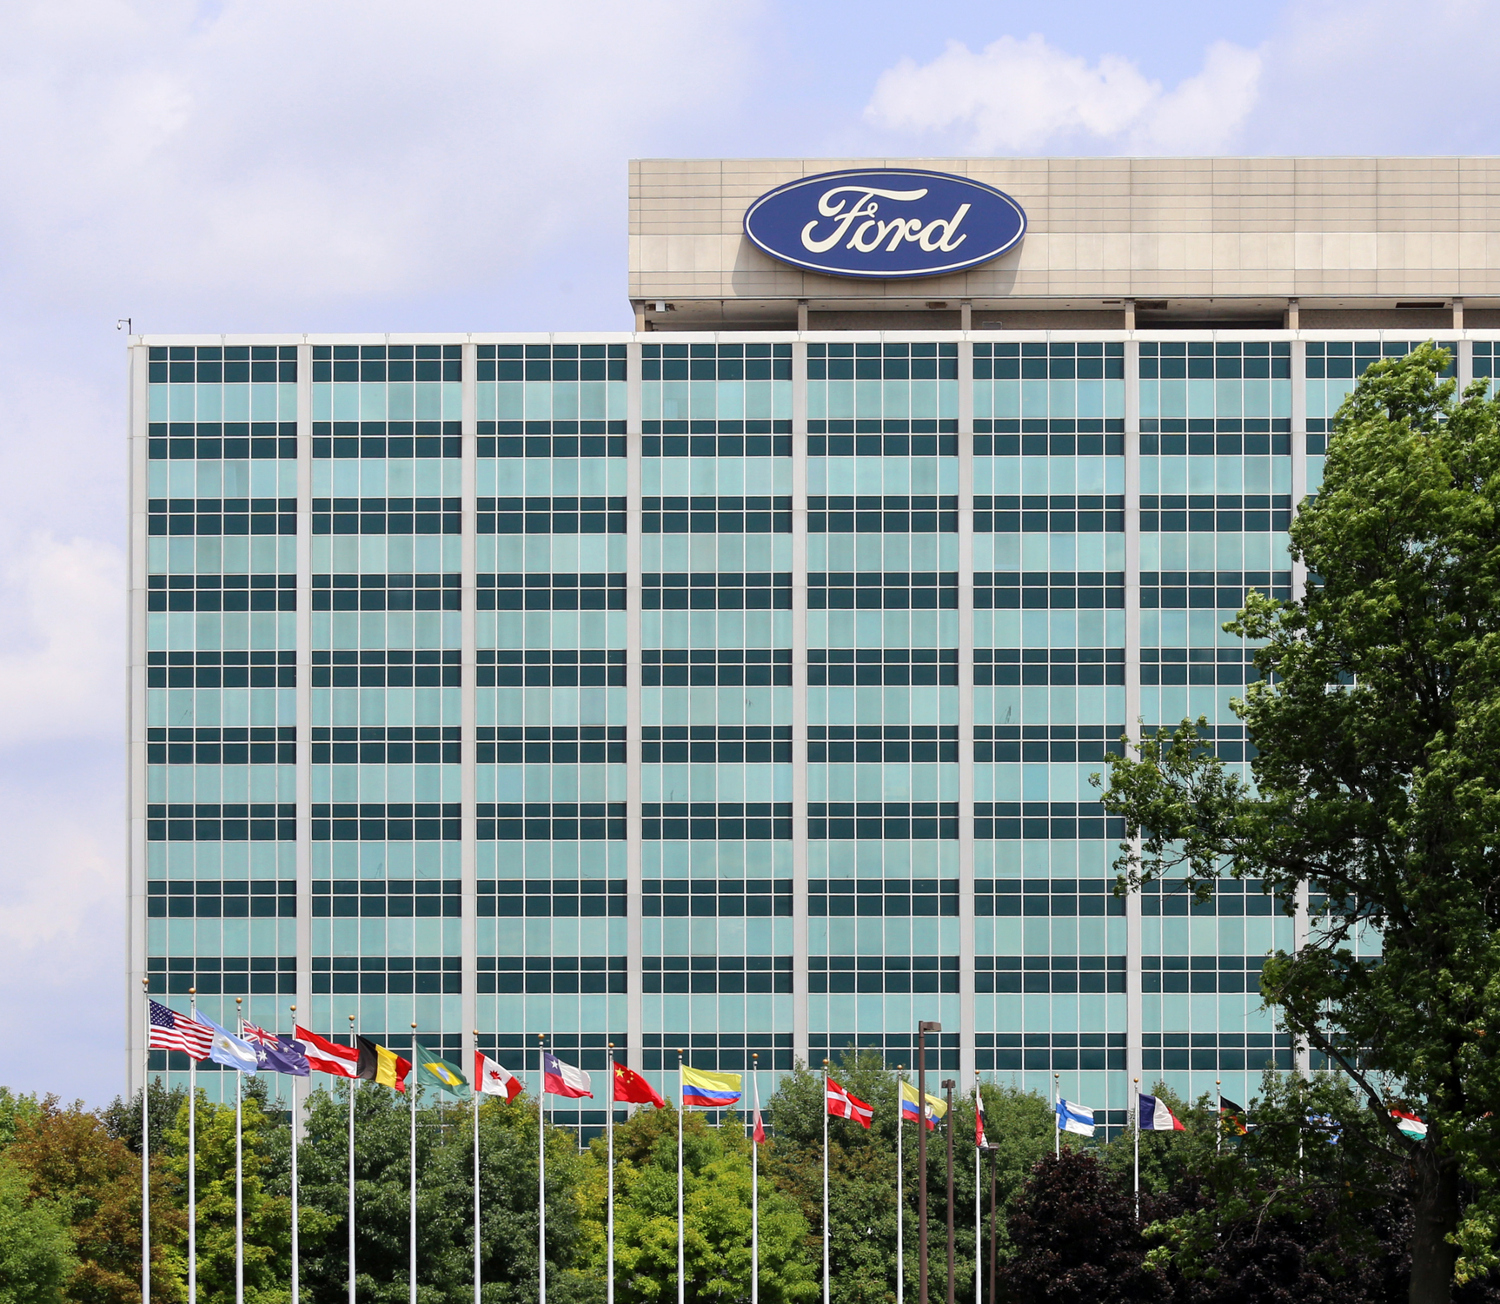 An exception for ford motor company nysef dividend stocksnews https www incomeinvestors com wp content uploads 2018 03 ford stock 150x150 jpg